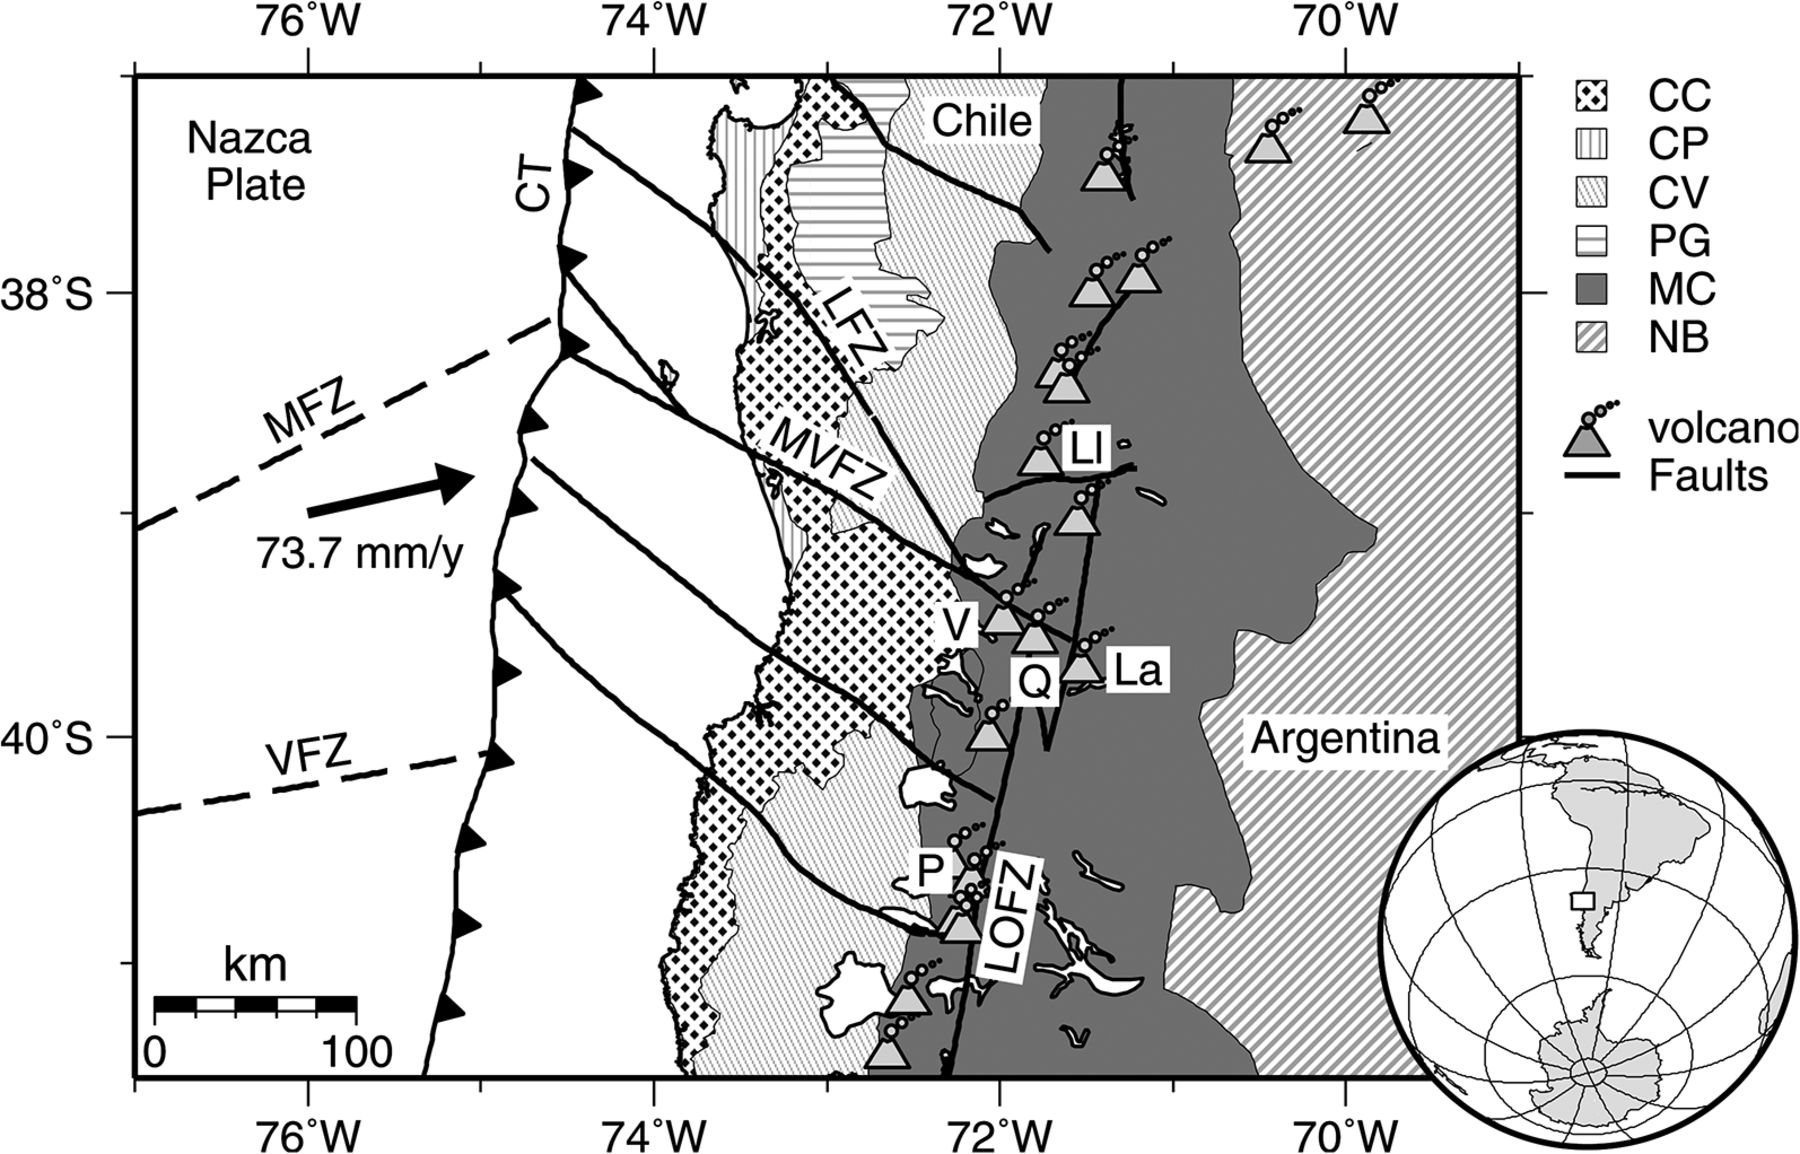 Shear Wave Velocity Structure Of The Chilean Subduction Zone 3940 Kenneth39s Geography Blog Diagram Definition Volcanoes Download Figure